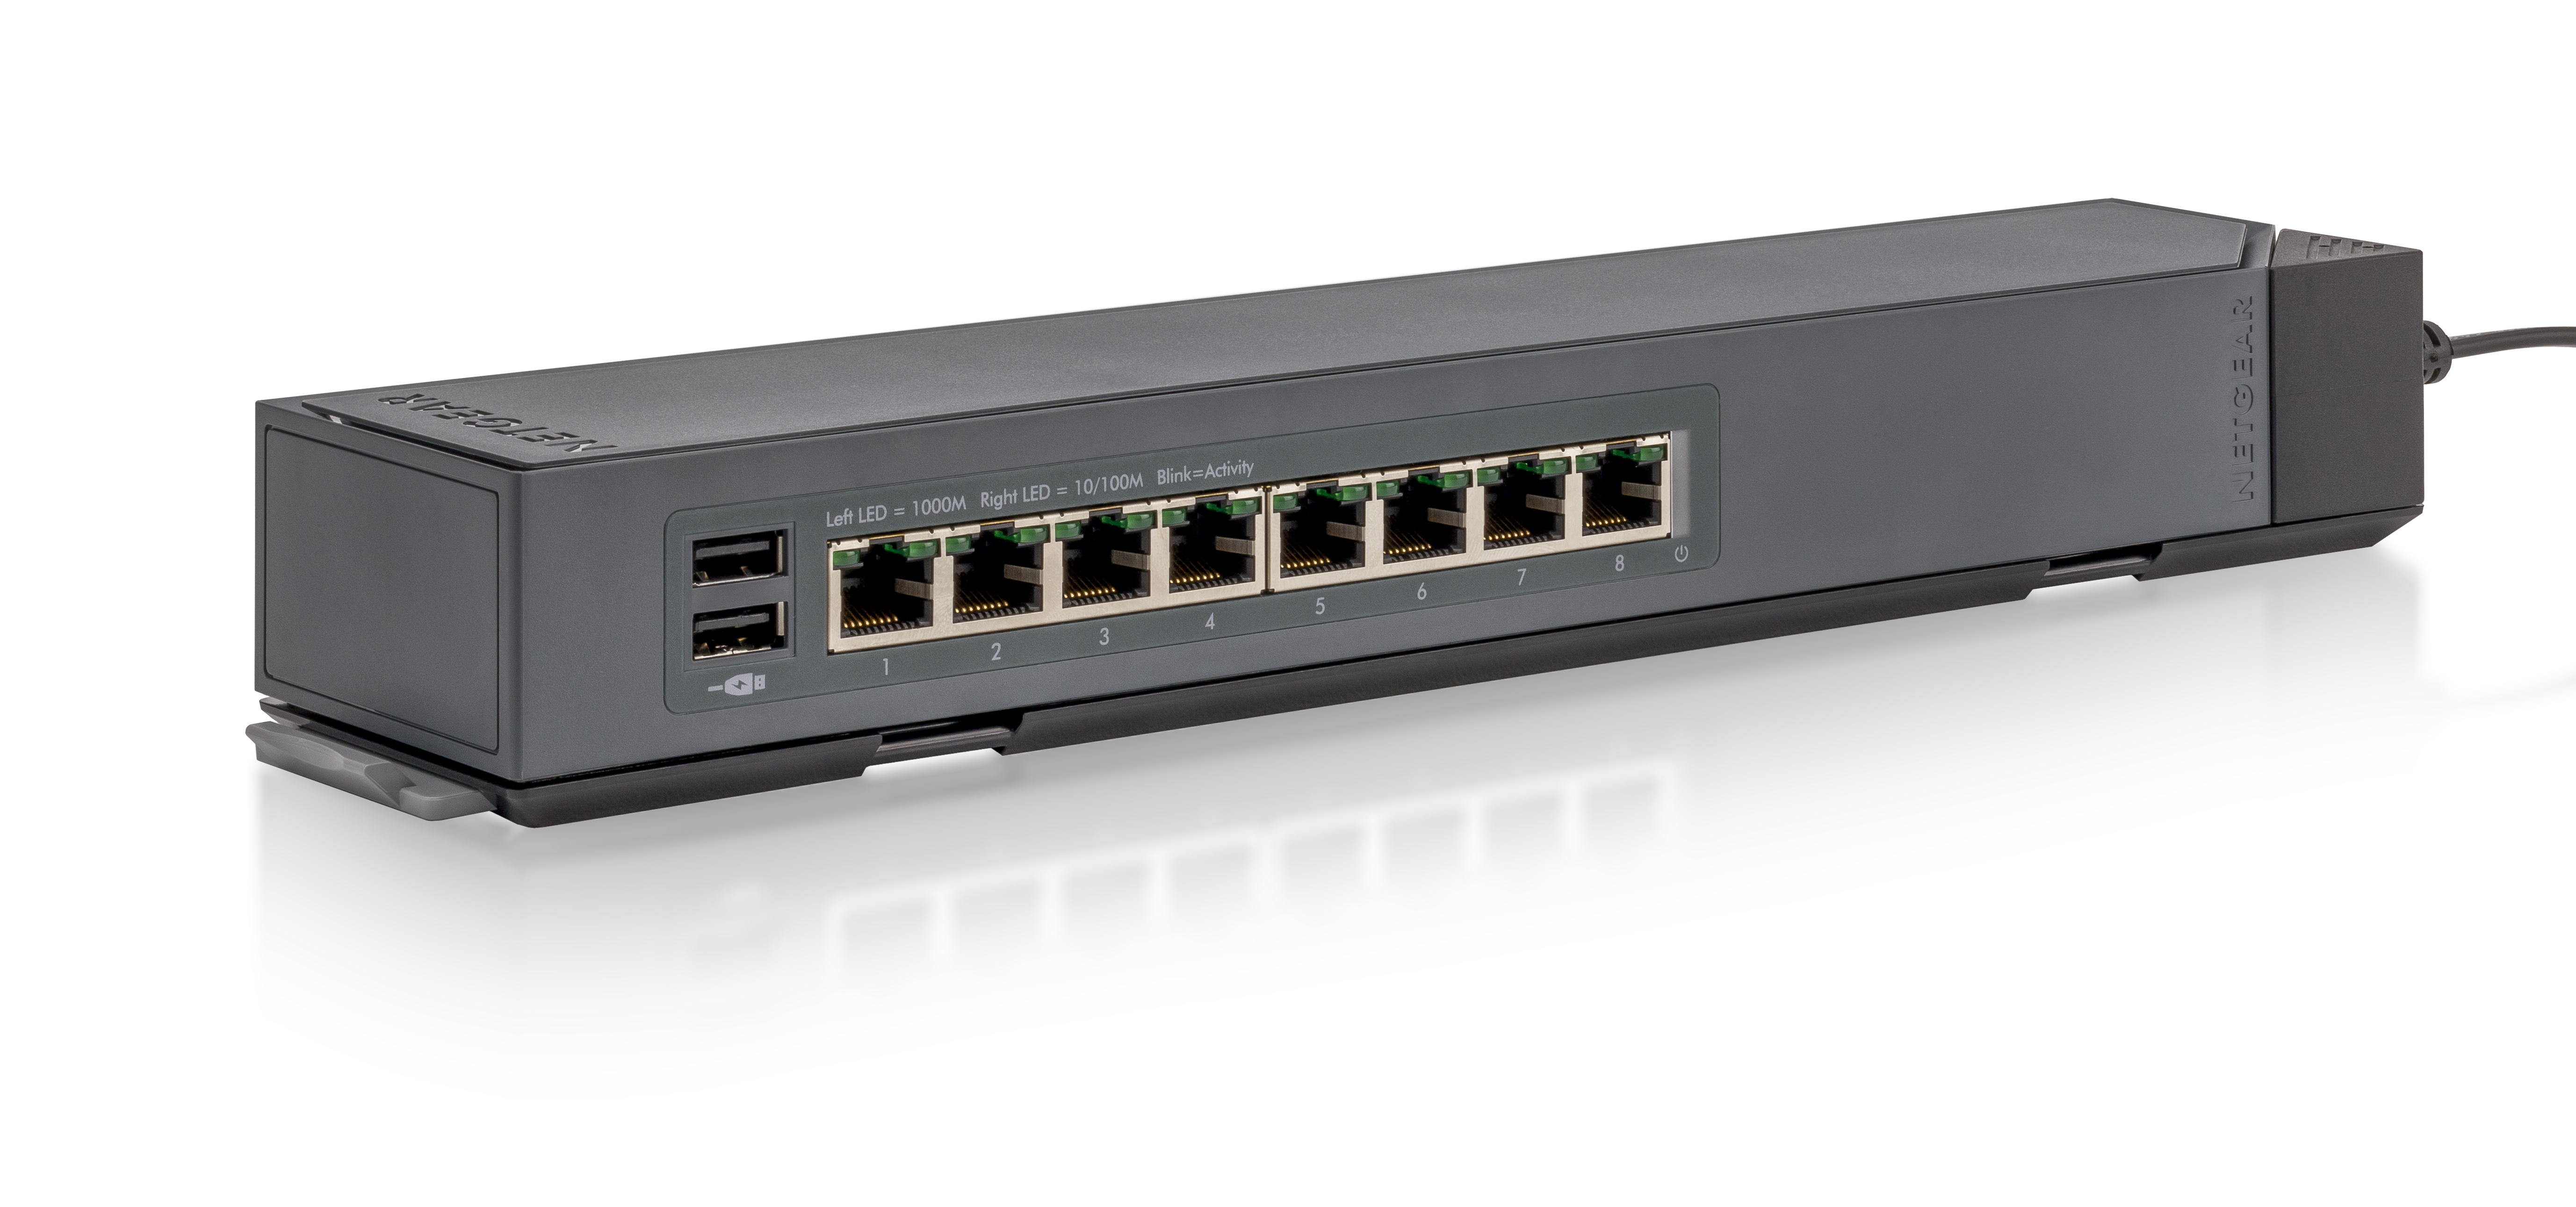 network switch mounting and cabling headaches are gone as netgear